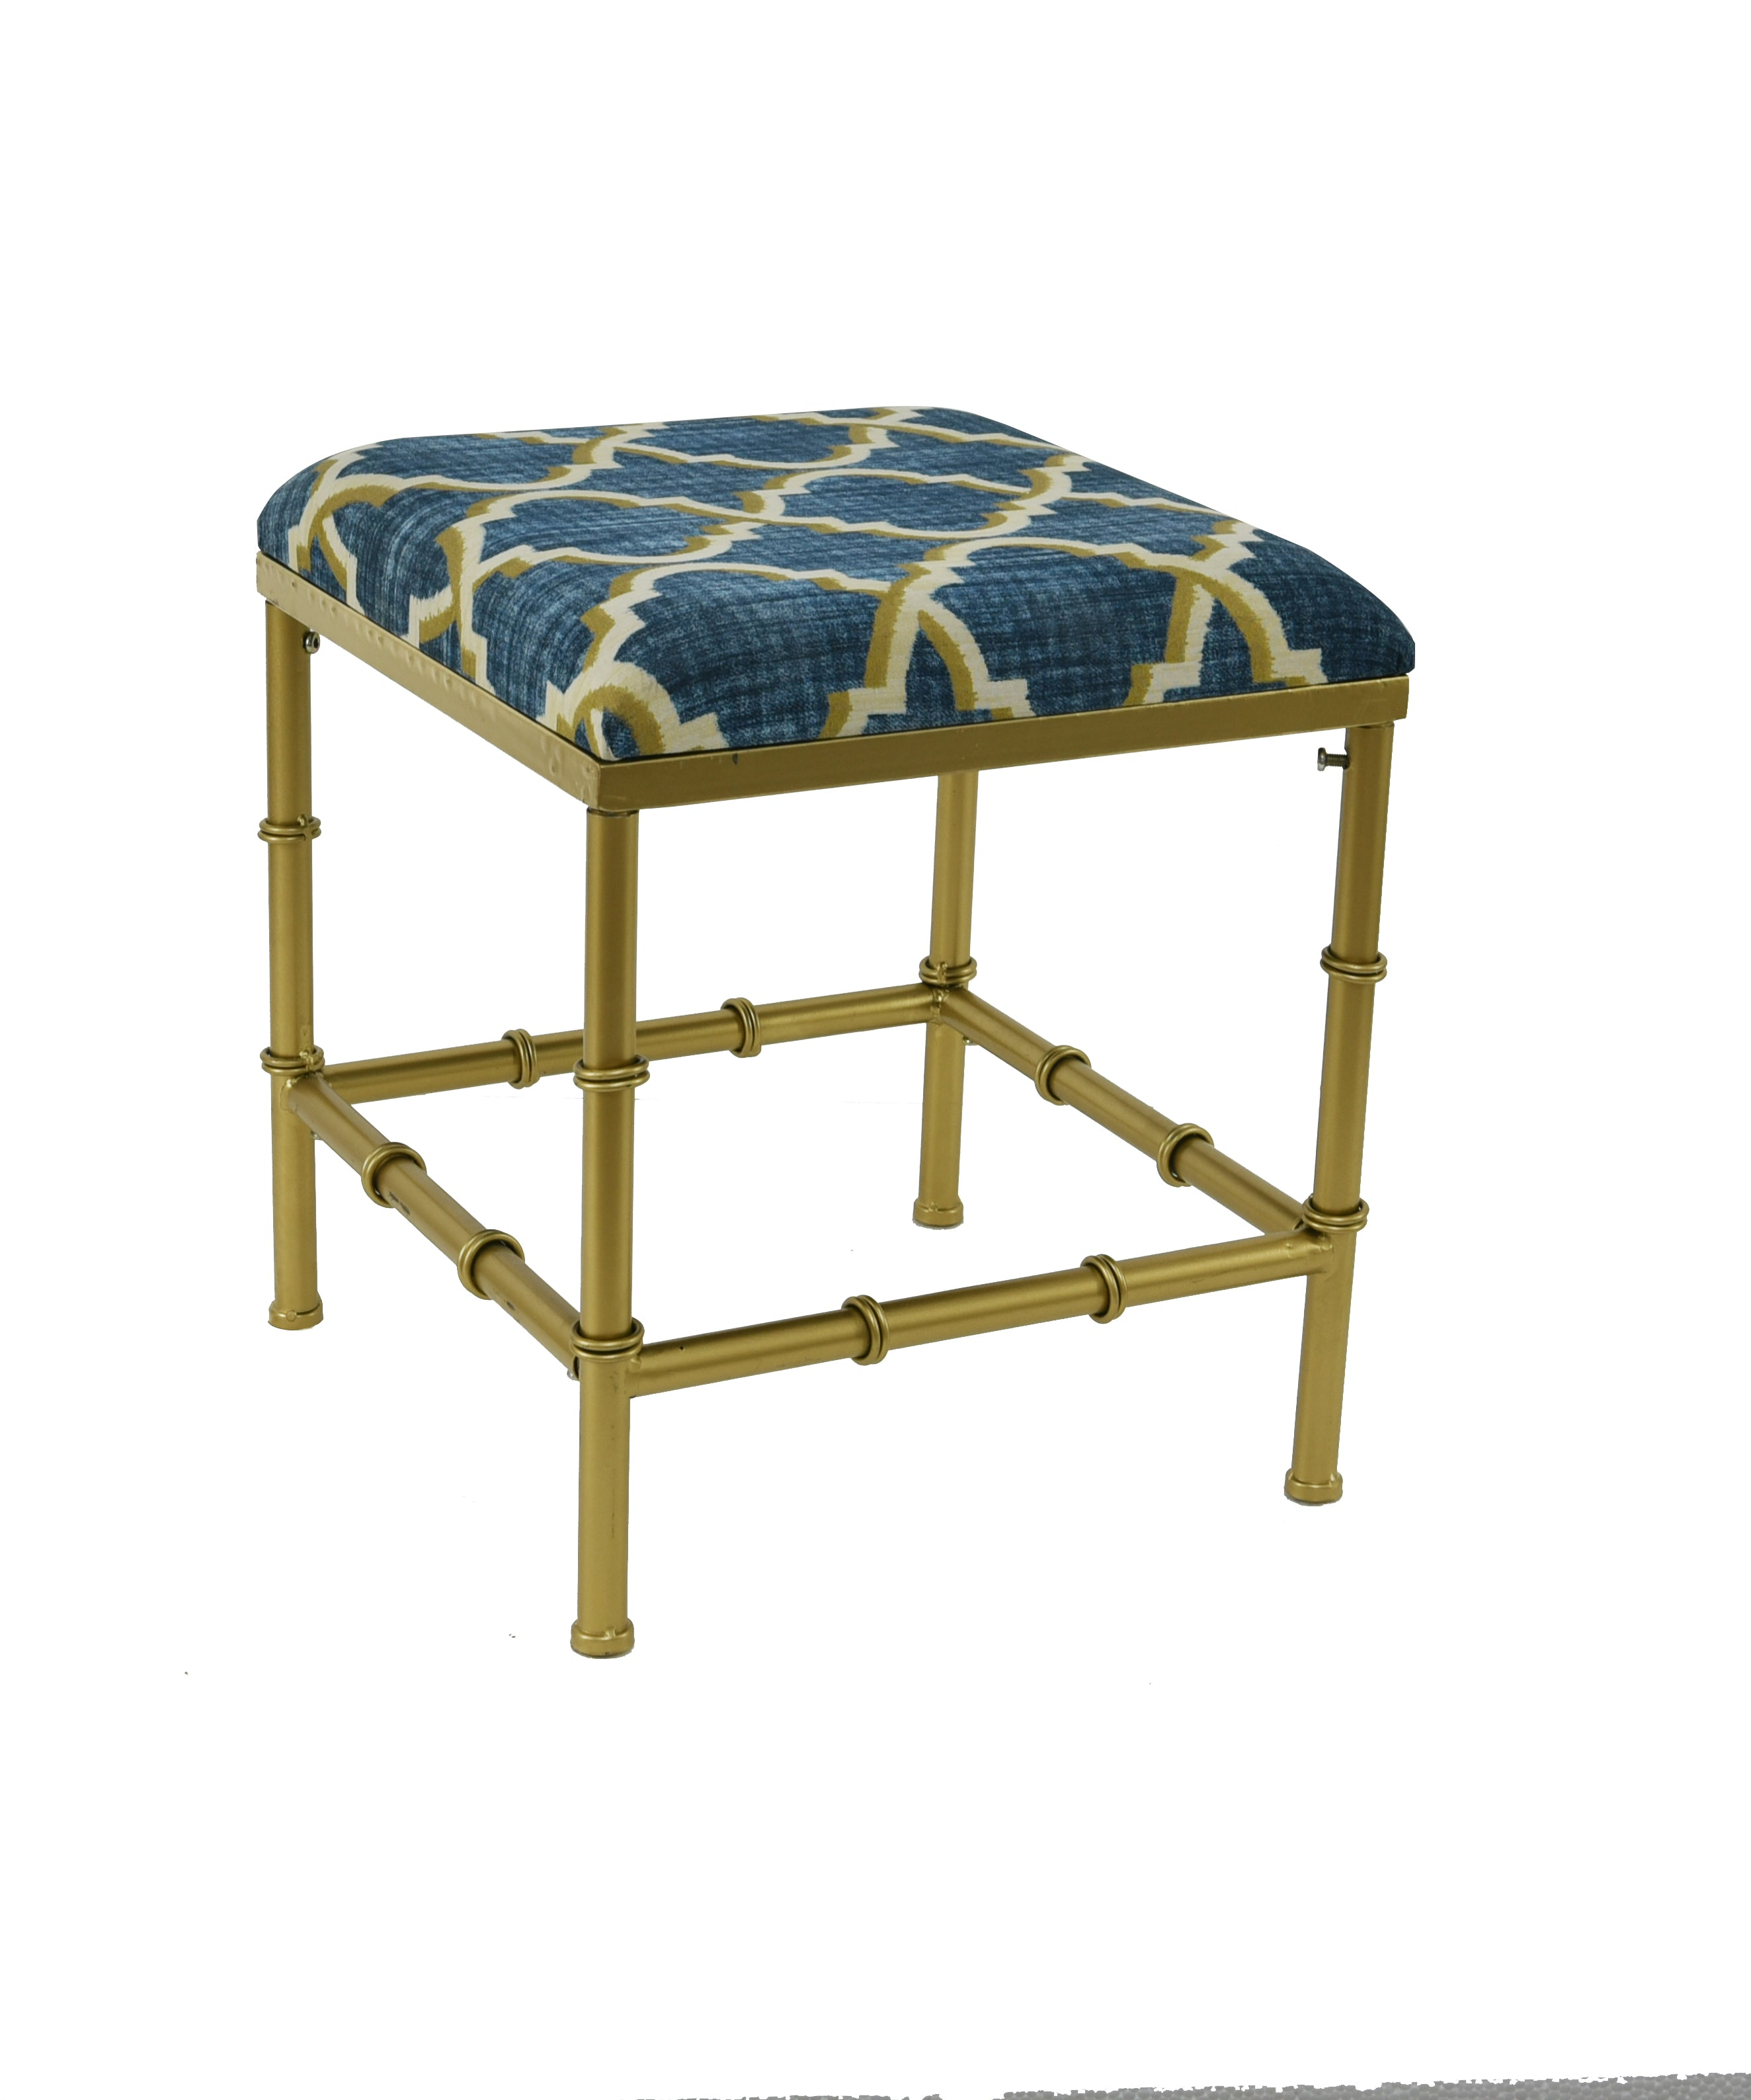 Bamboo Metal and Fabric Cushioned Ottoman, 21-inch Tall